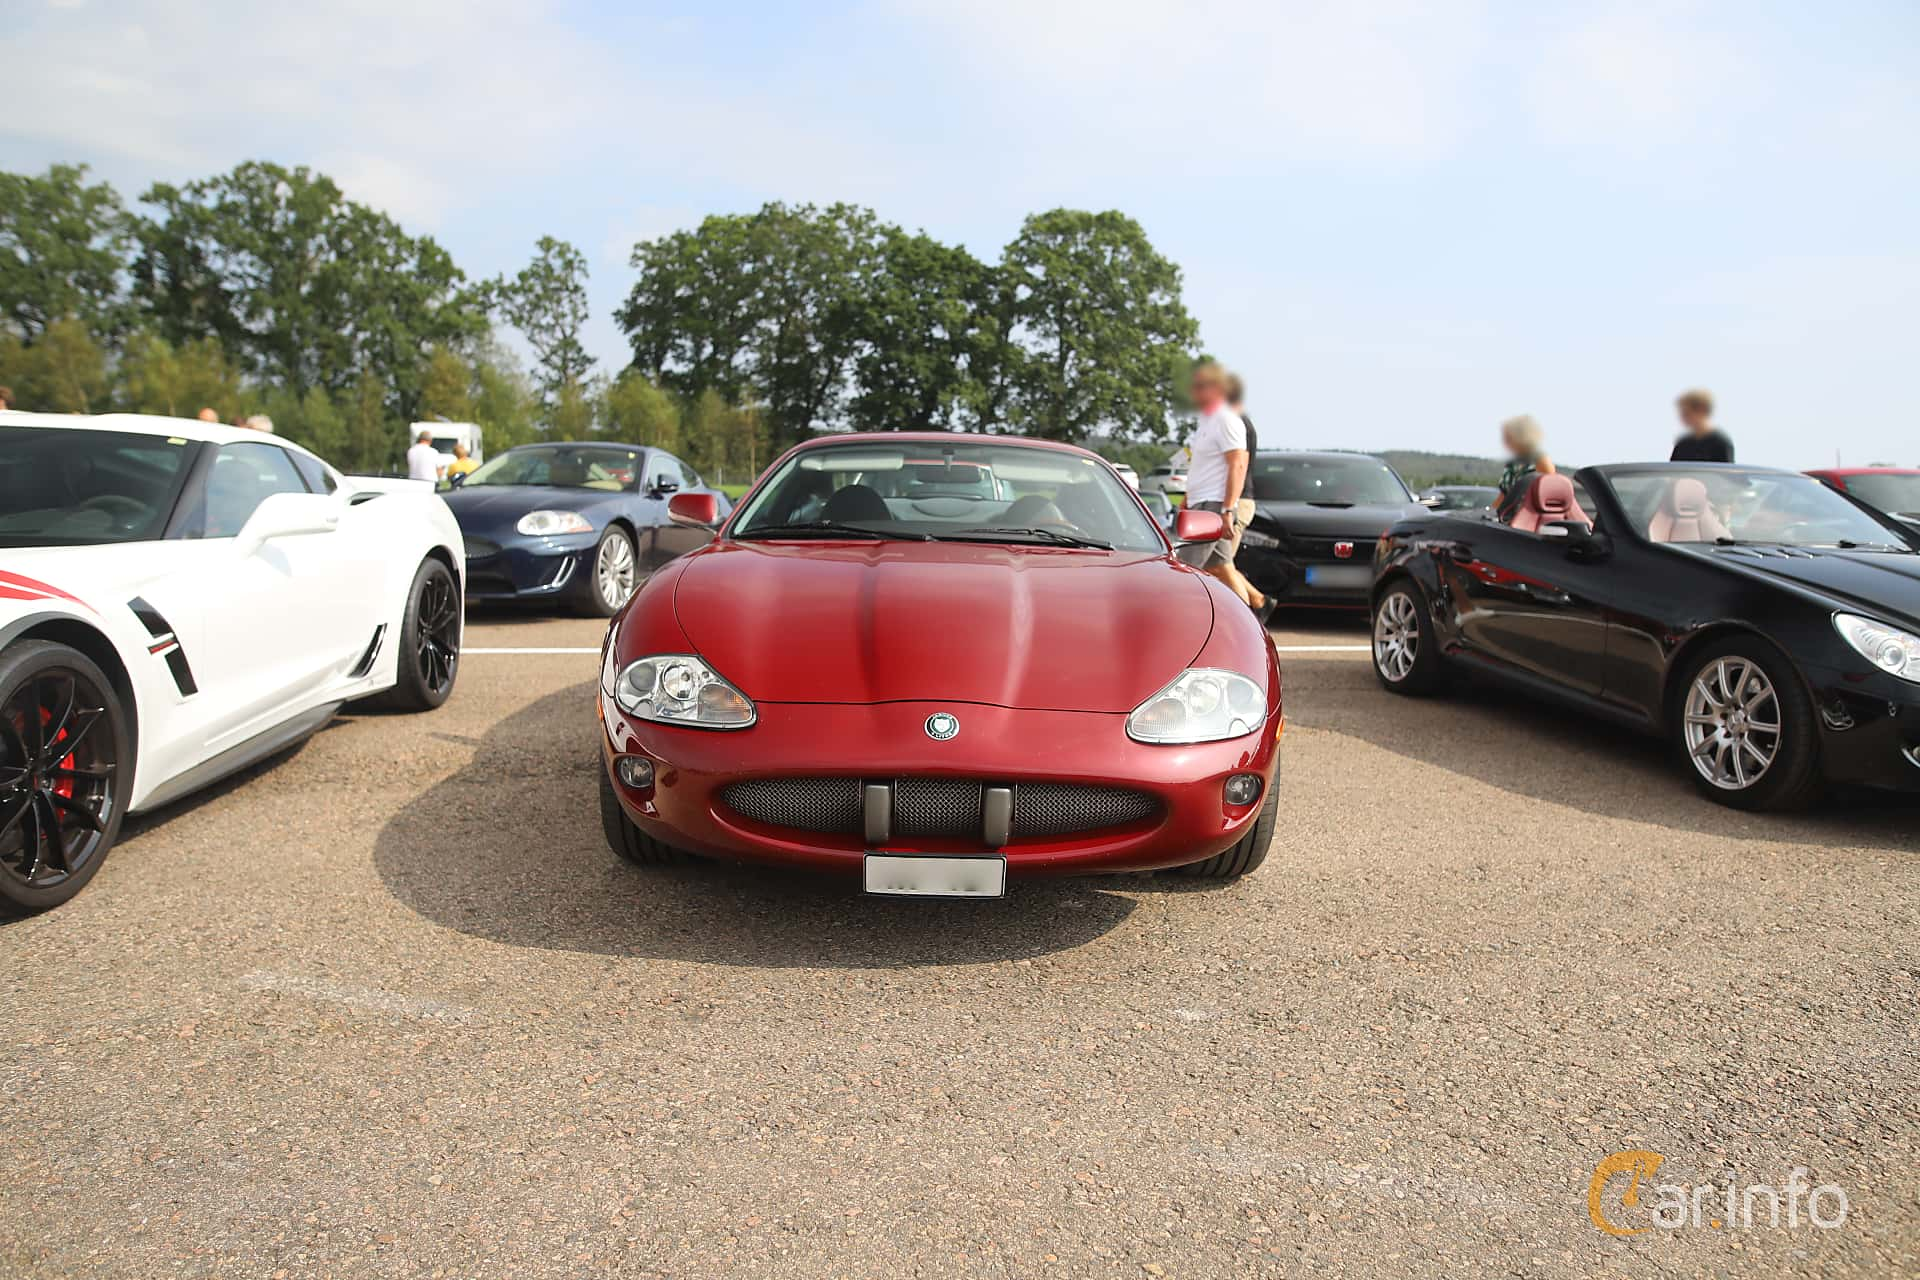 Front  of Jaguar XK8 4.0 V8 Automatic, 284ps, 1998 at Autoropa Racing day Knutstorp 2019